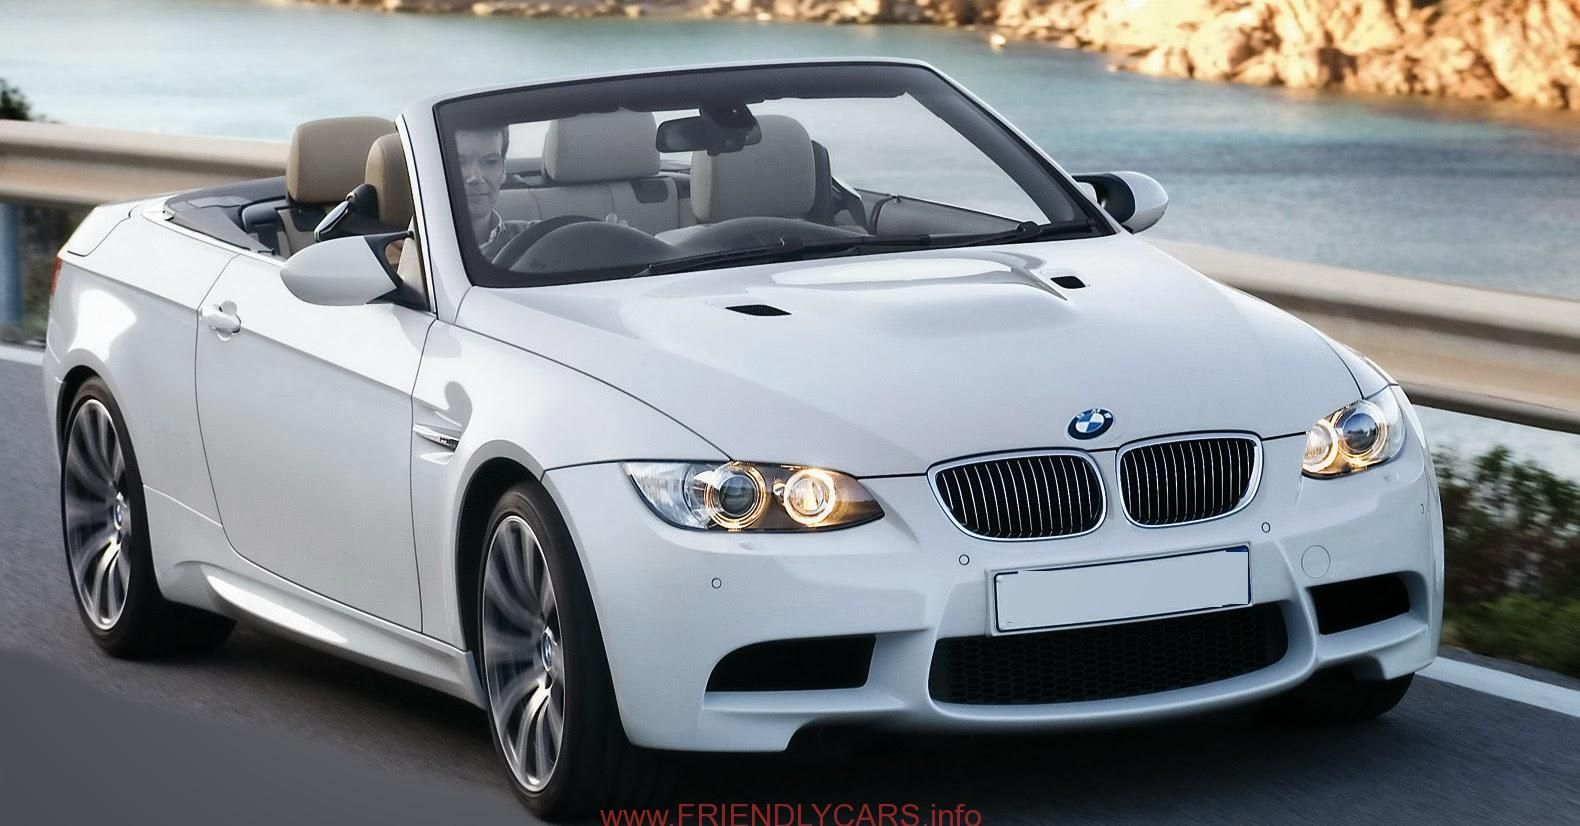 find this pin and more on bmw cars gallery by indriayudwiyani